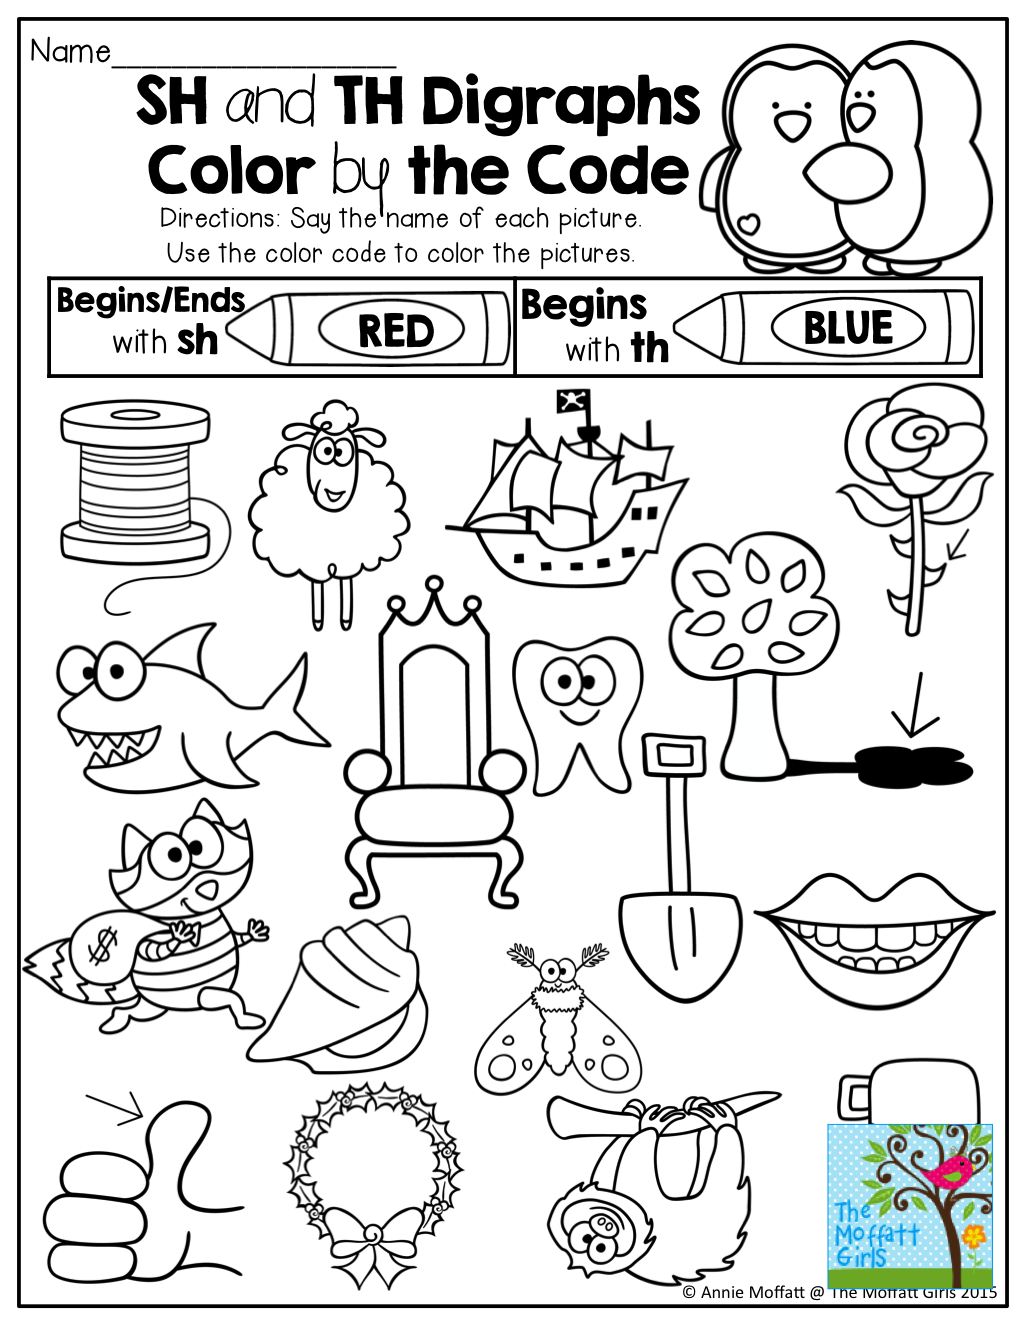 Coloring worksheets phonics - Beginning Digraphs Color By The Code Tons Of Fun And Engaging Printables